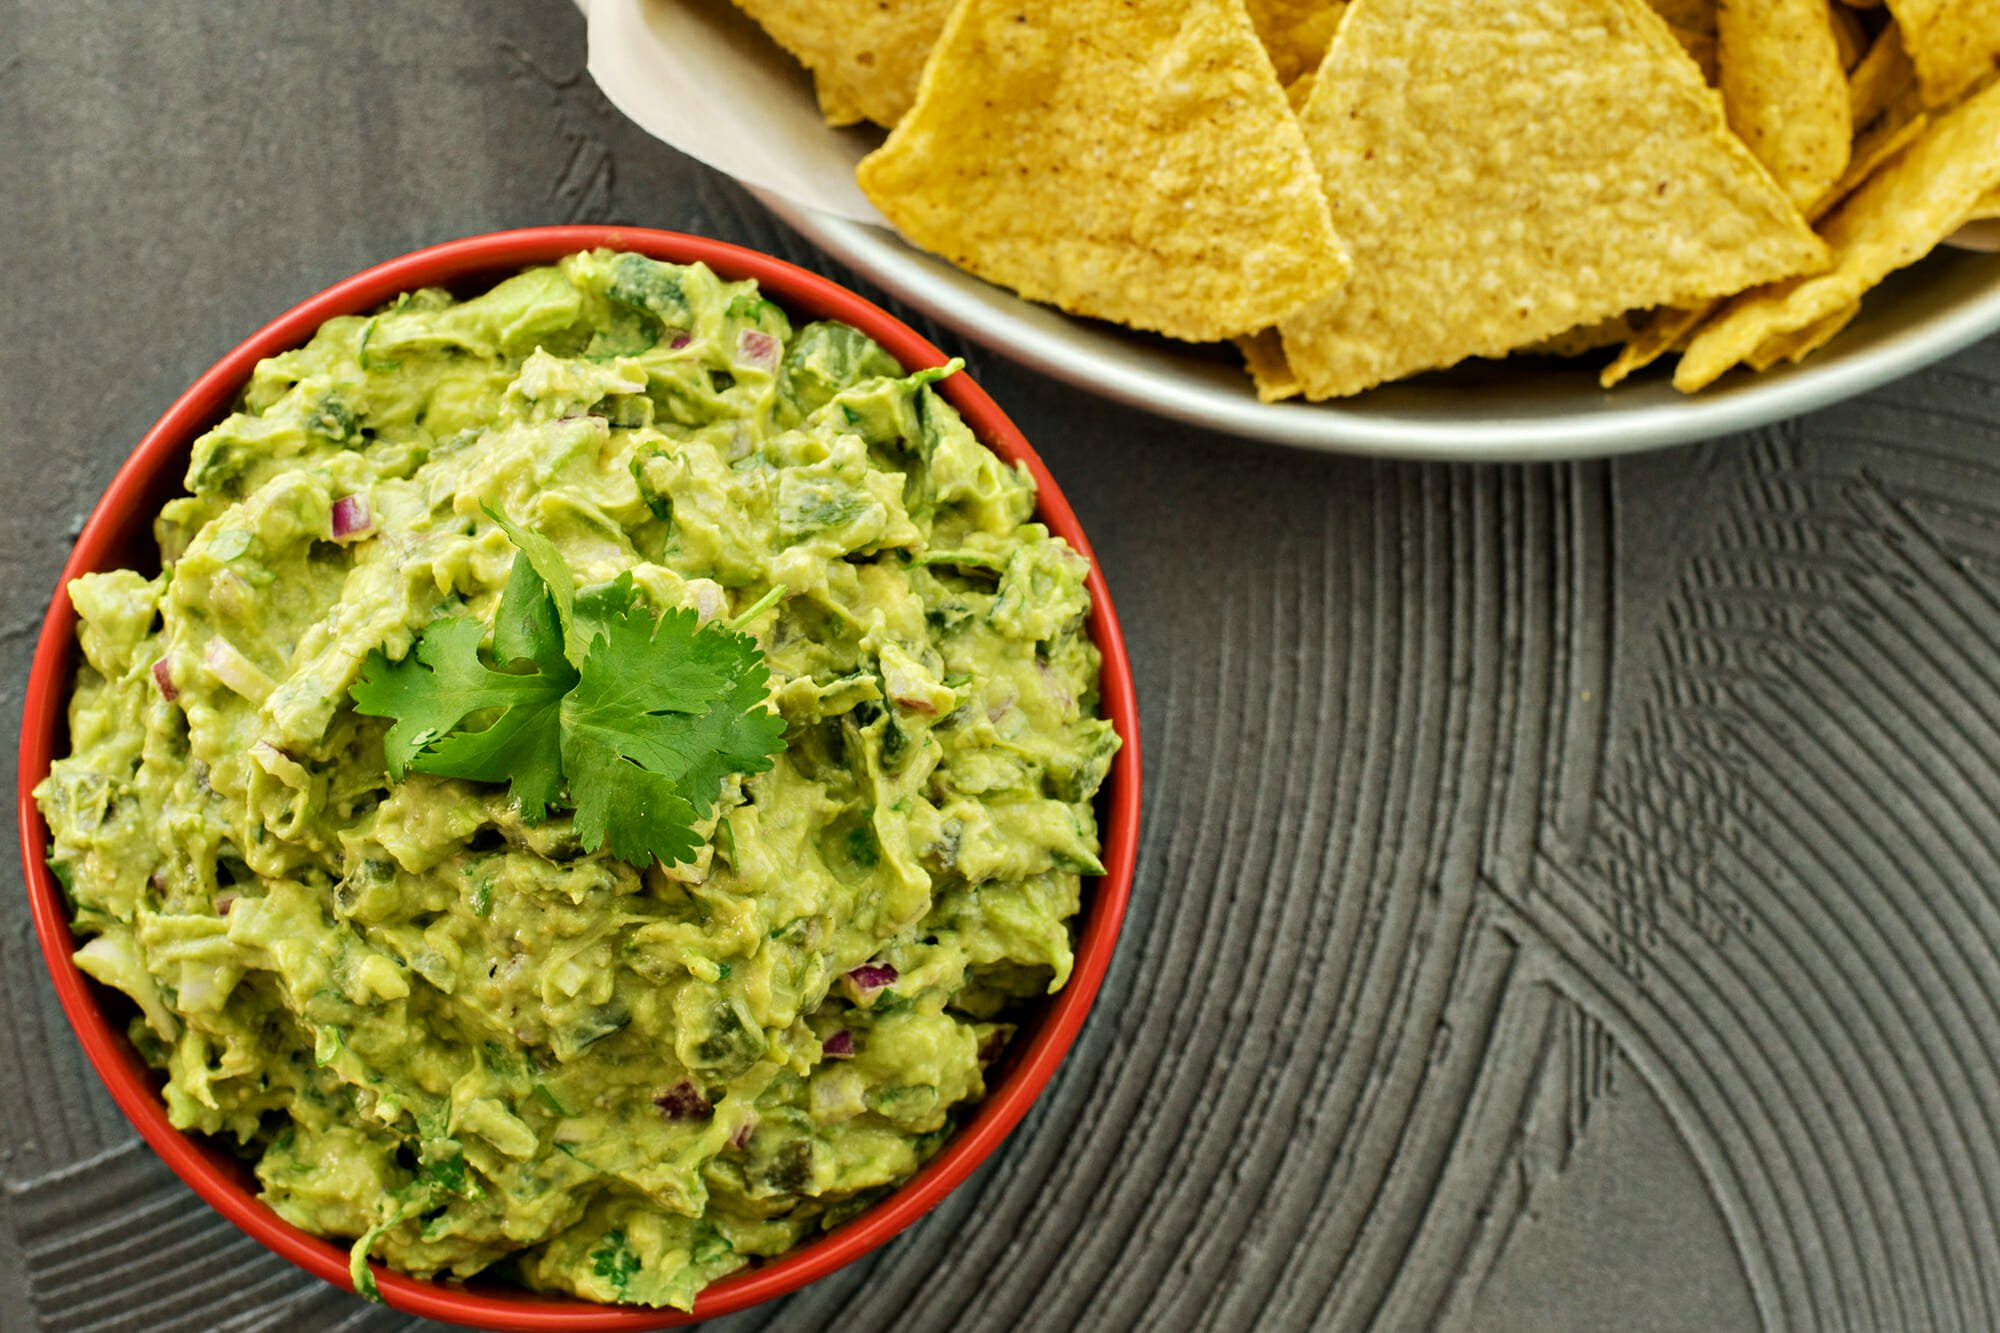 How to Make Avocado Dip - guacamole in a bowl wtih chips on the side